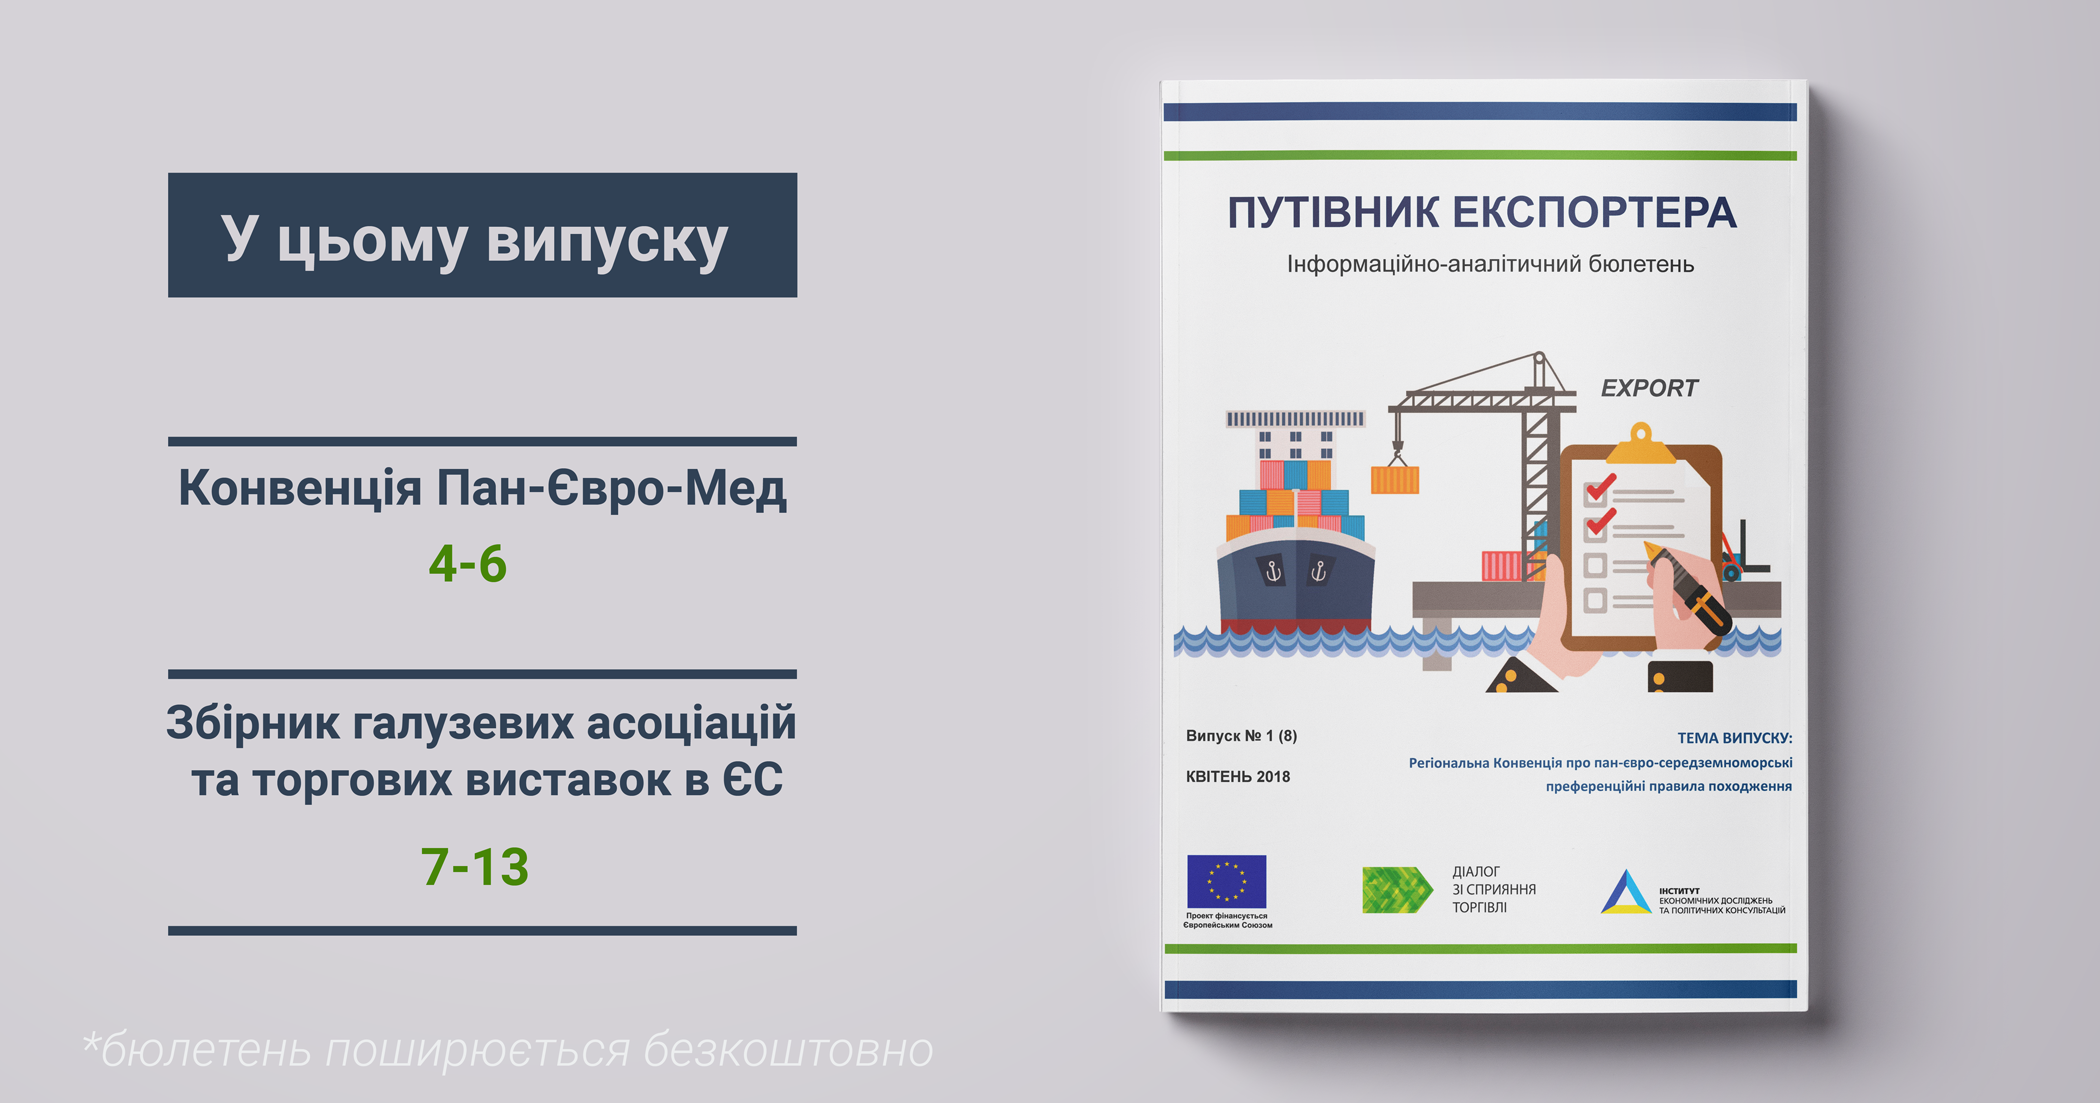 http://www.ier.com.ua/files/publications/Newsletter/Exporters_guide/Putivnyk_1.png